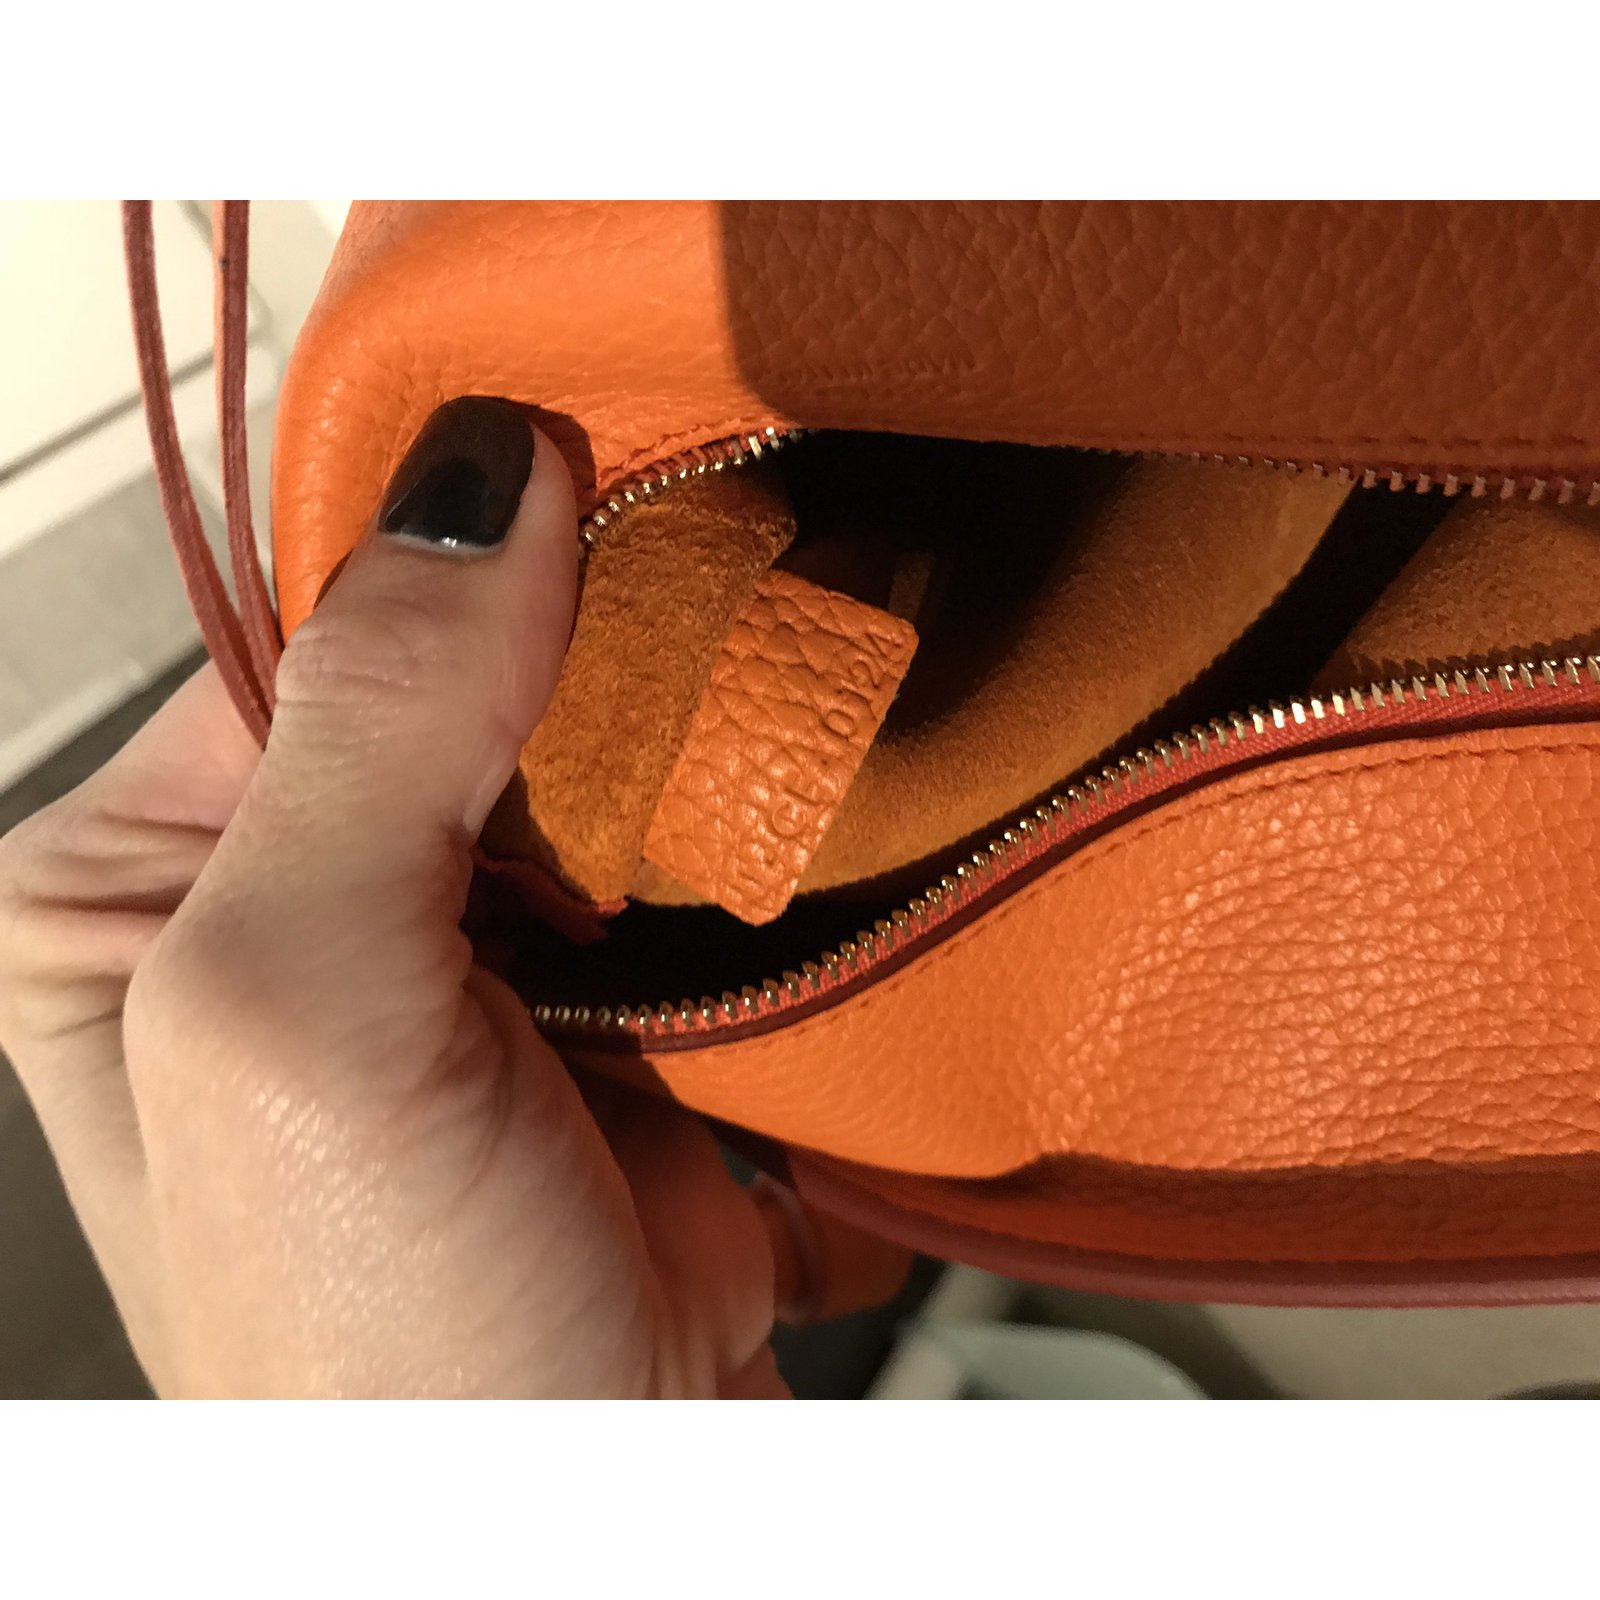 83e9d5921b0 Céline Tie Bag Handbags Leather Orange ref.66679 - Joli Closet